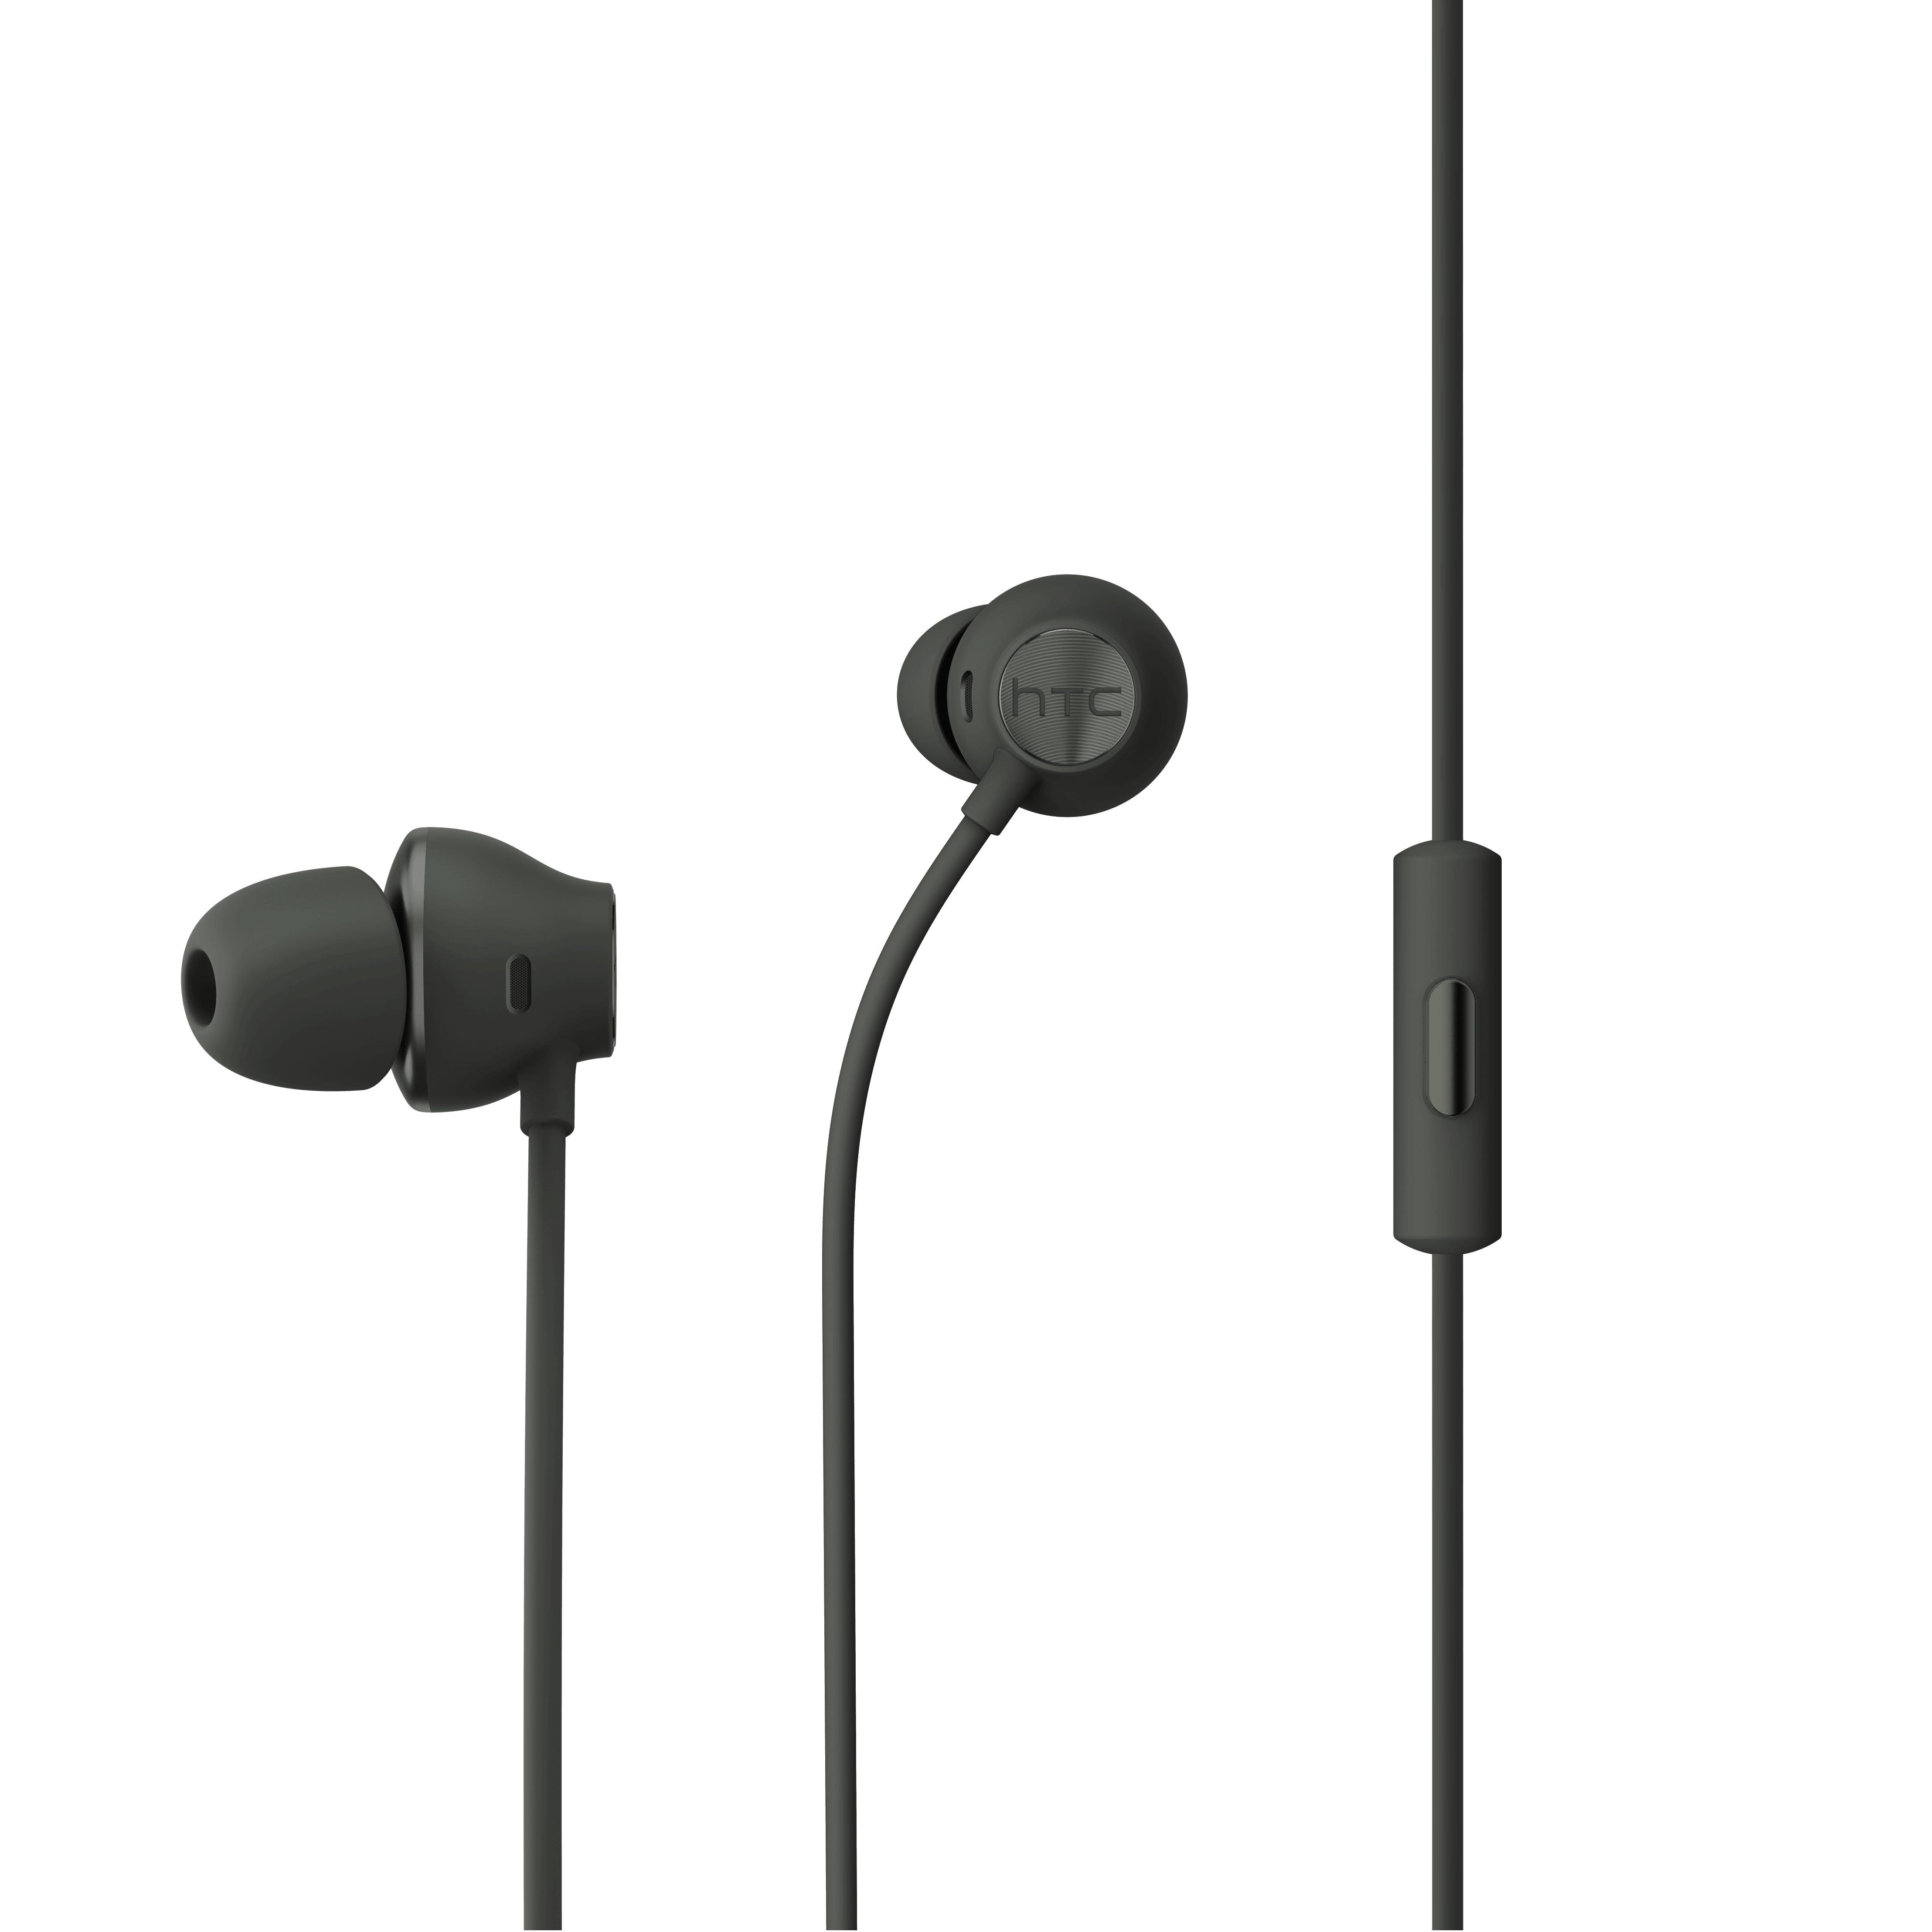 HTC USonic Adaptive Audio Earphones - default